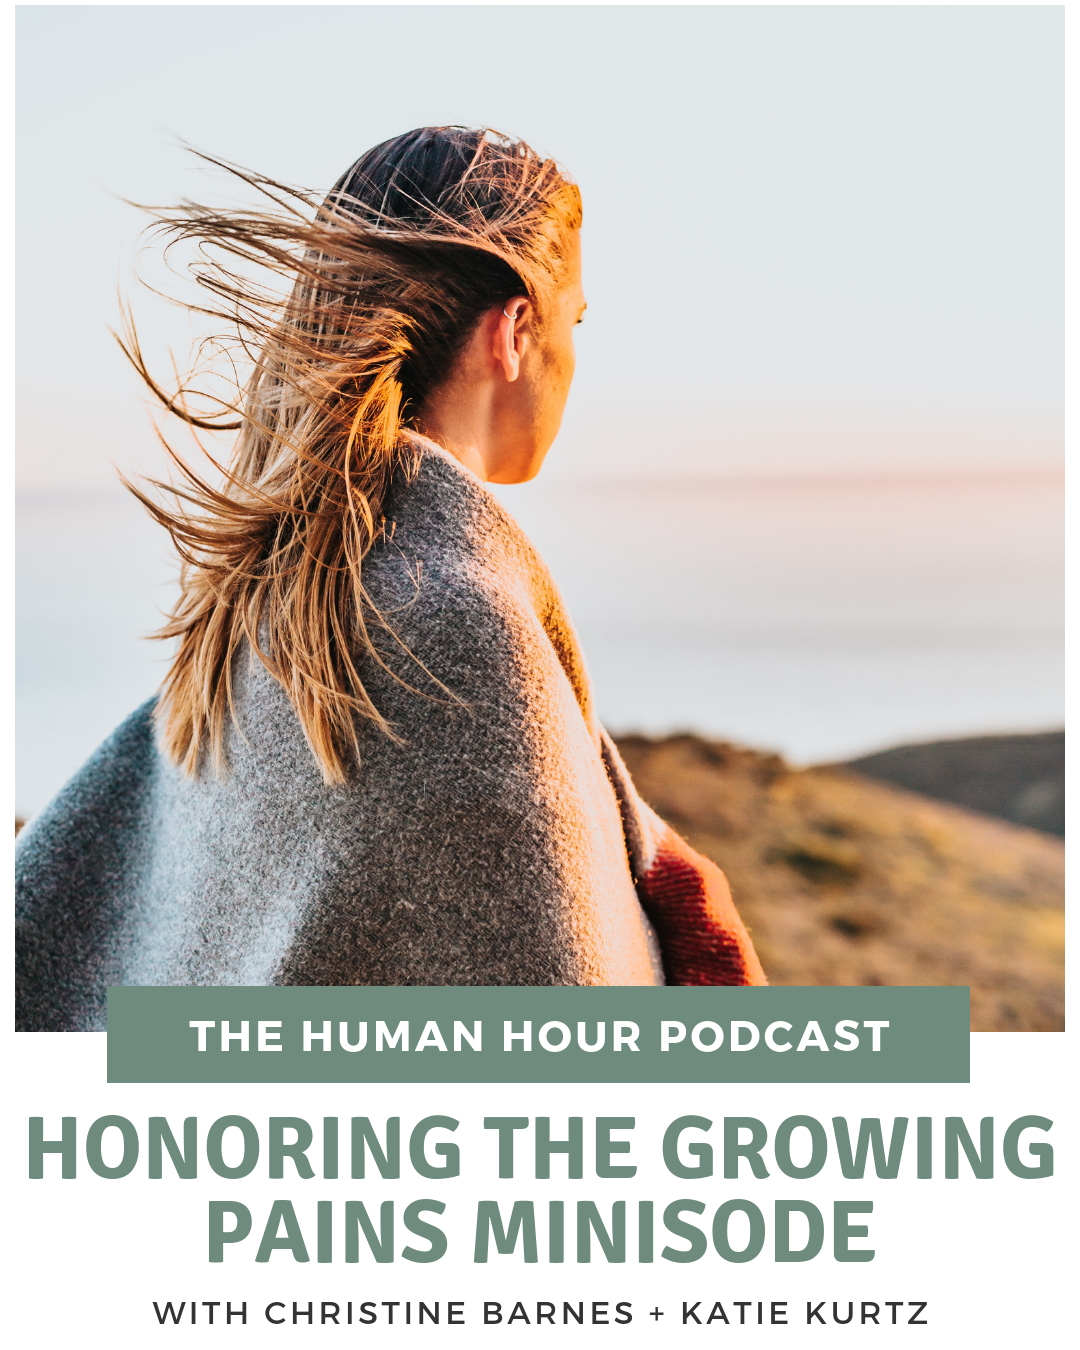 S2 E8: Honoring the Growing Pains Minisode with Christine Barnes + Katie Kurtz